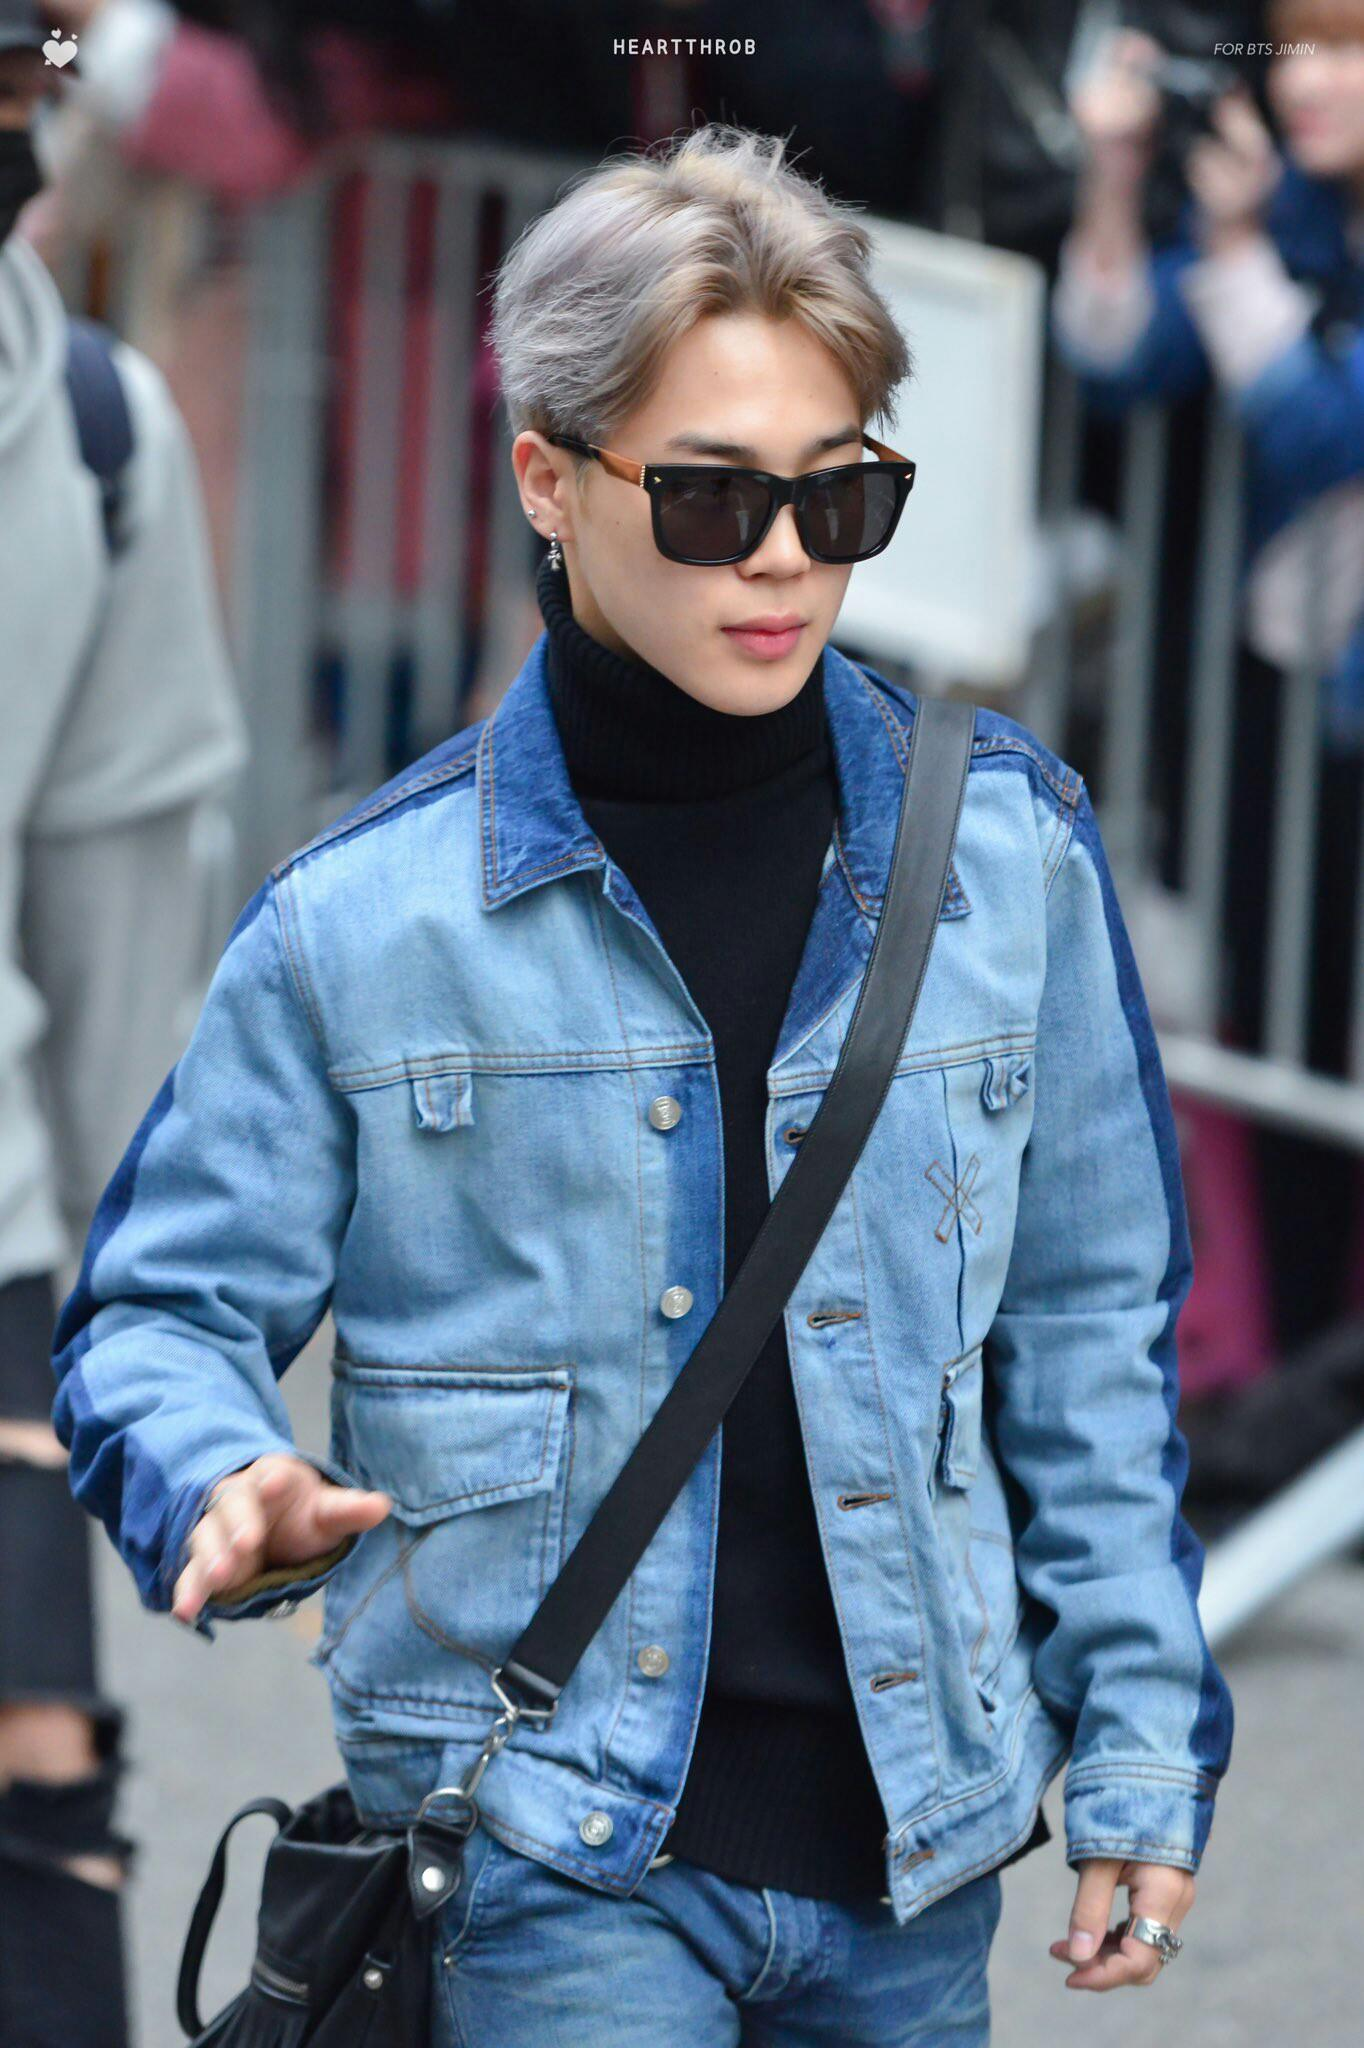 BTS Jimin revealed he used to lose consciousness, because of